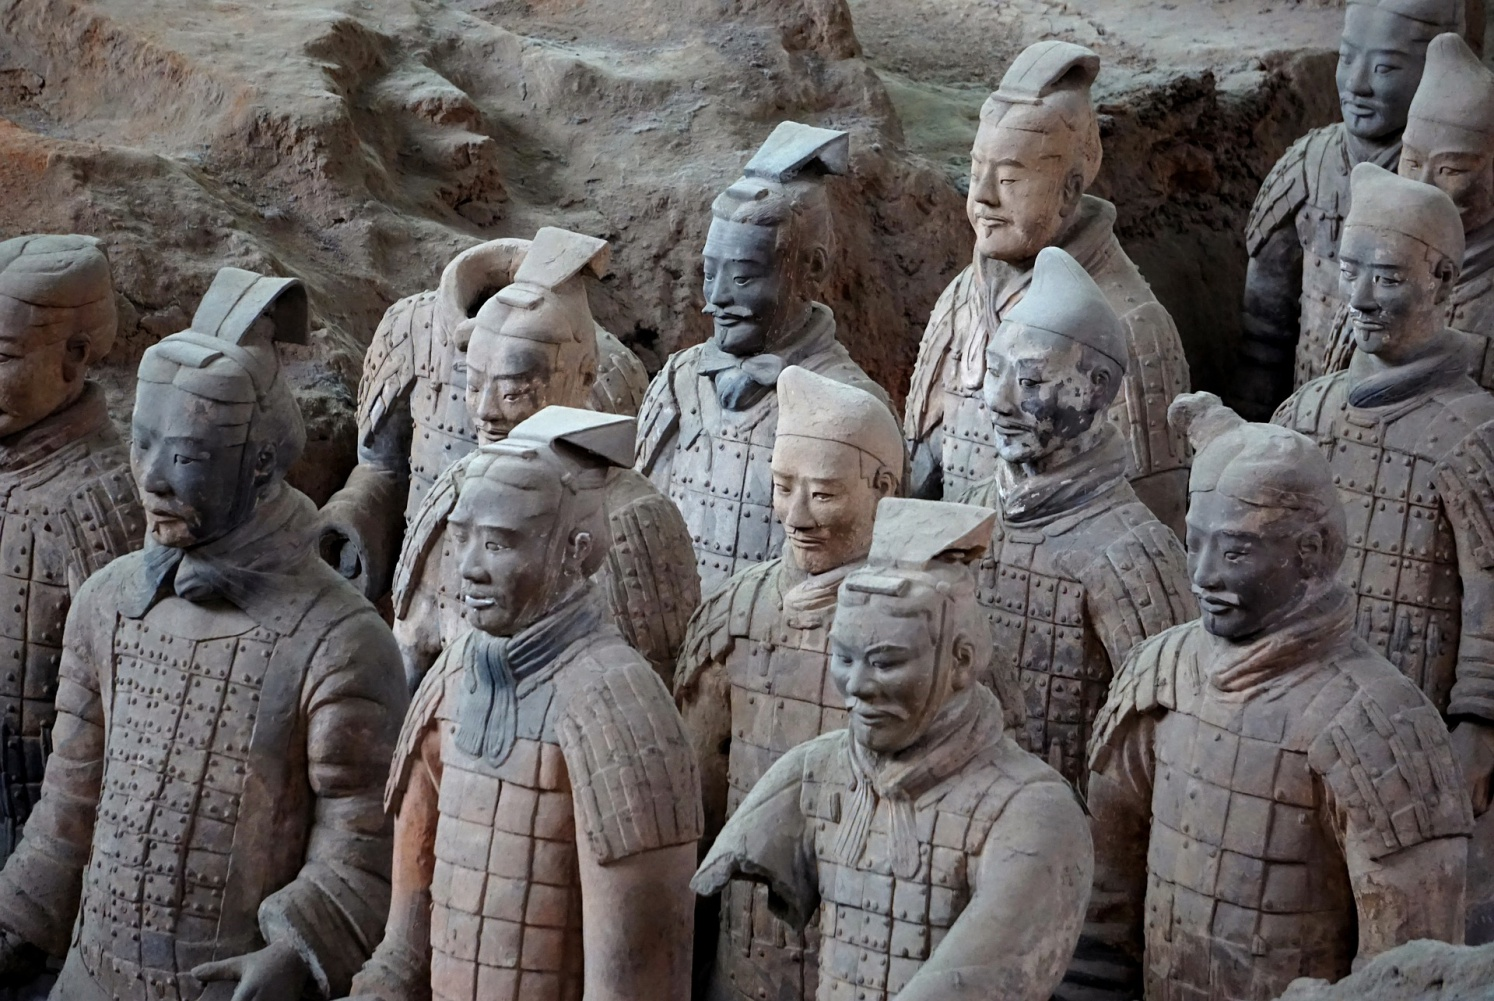 Day 12: Terracotta Warriors - Often cited as one of the world's most significant archaeological discoveries, the Qin Terracotta Warriors, arranged in battle formation around the giant mausoleum, are a powerful, evocative and hard-to-believe necessity on your China tour.